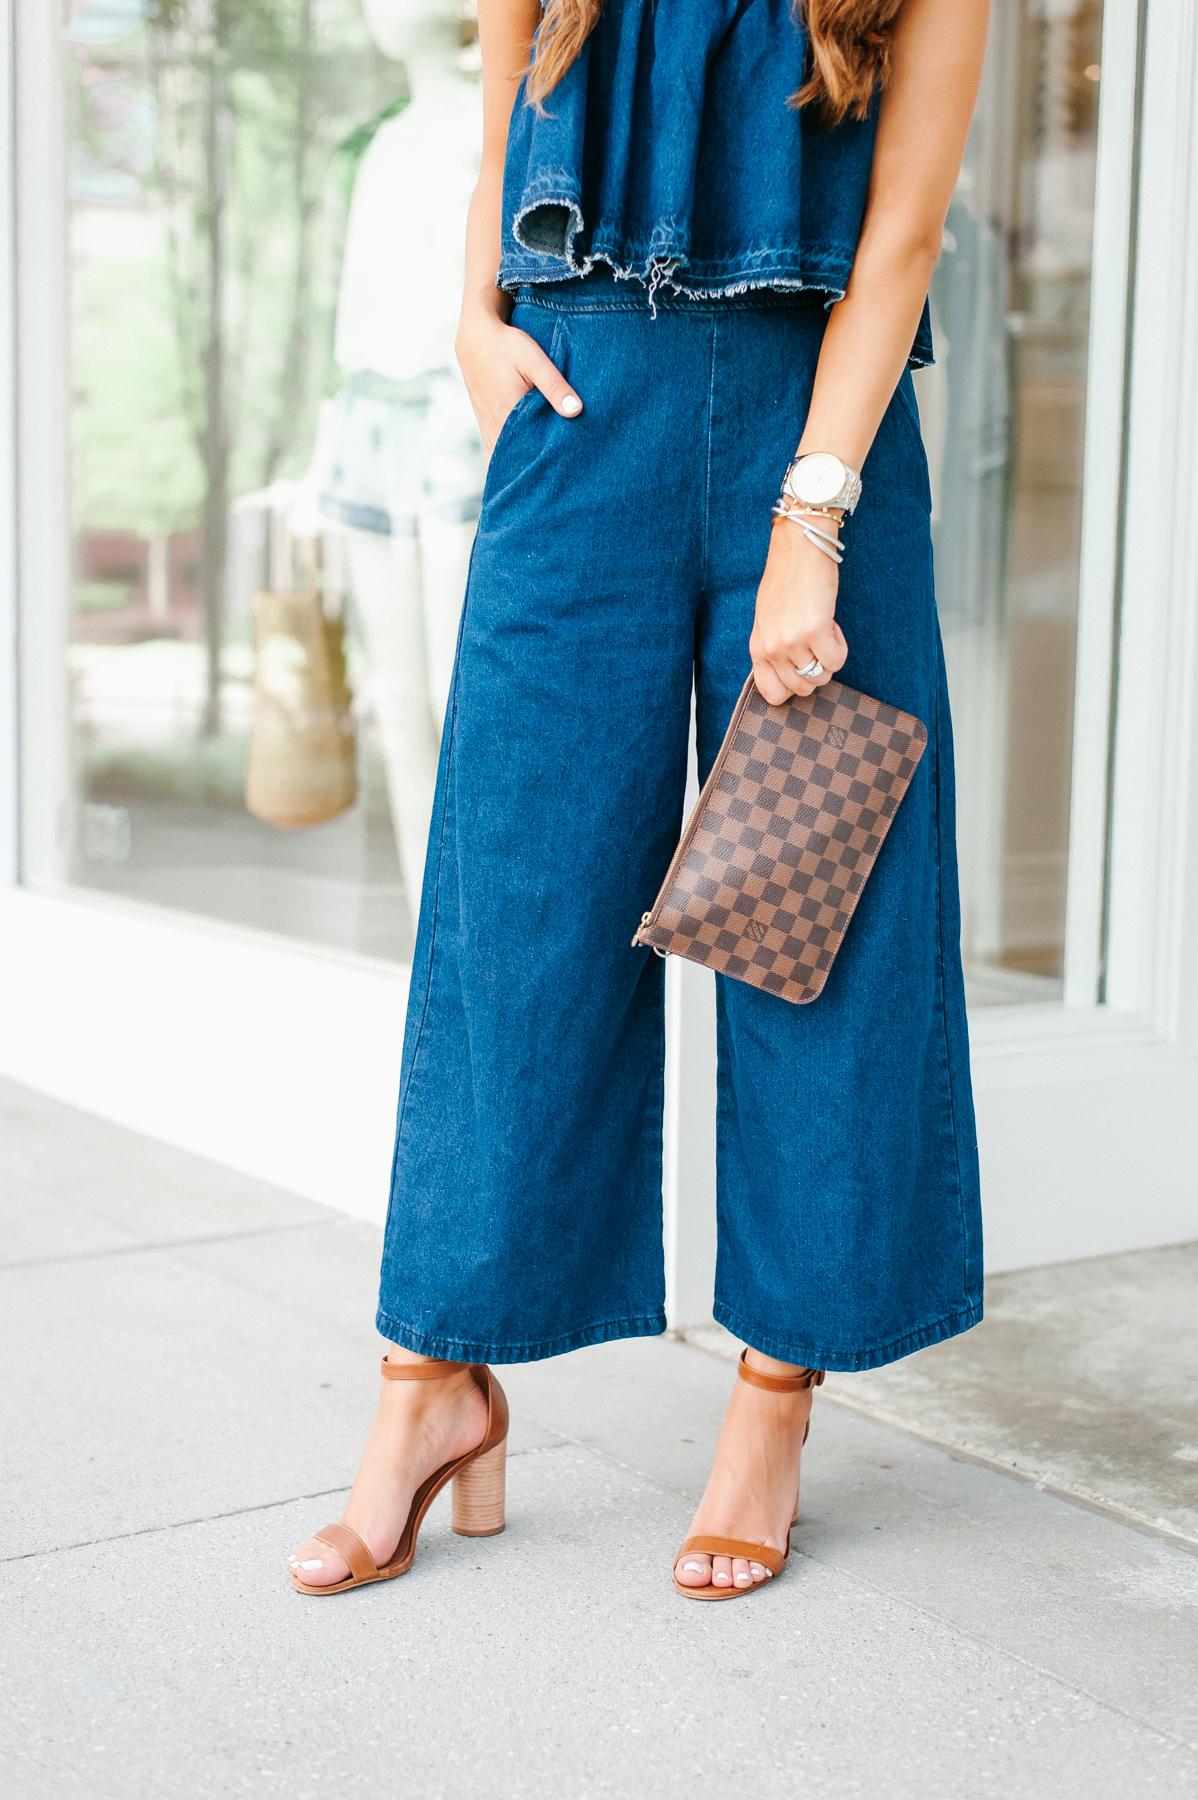 Dress Up Buttercup, Dede Raad, Houston blogger, fashion blogger, J.O.A. Strapless Crop Denim Jumpsuit, Denim on Denim Jumpsuit